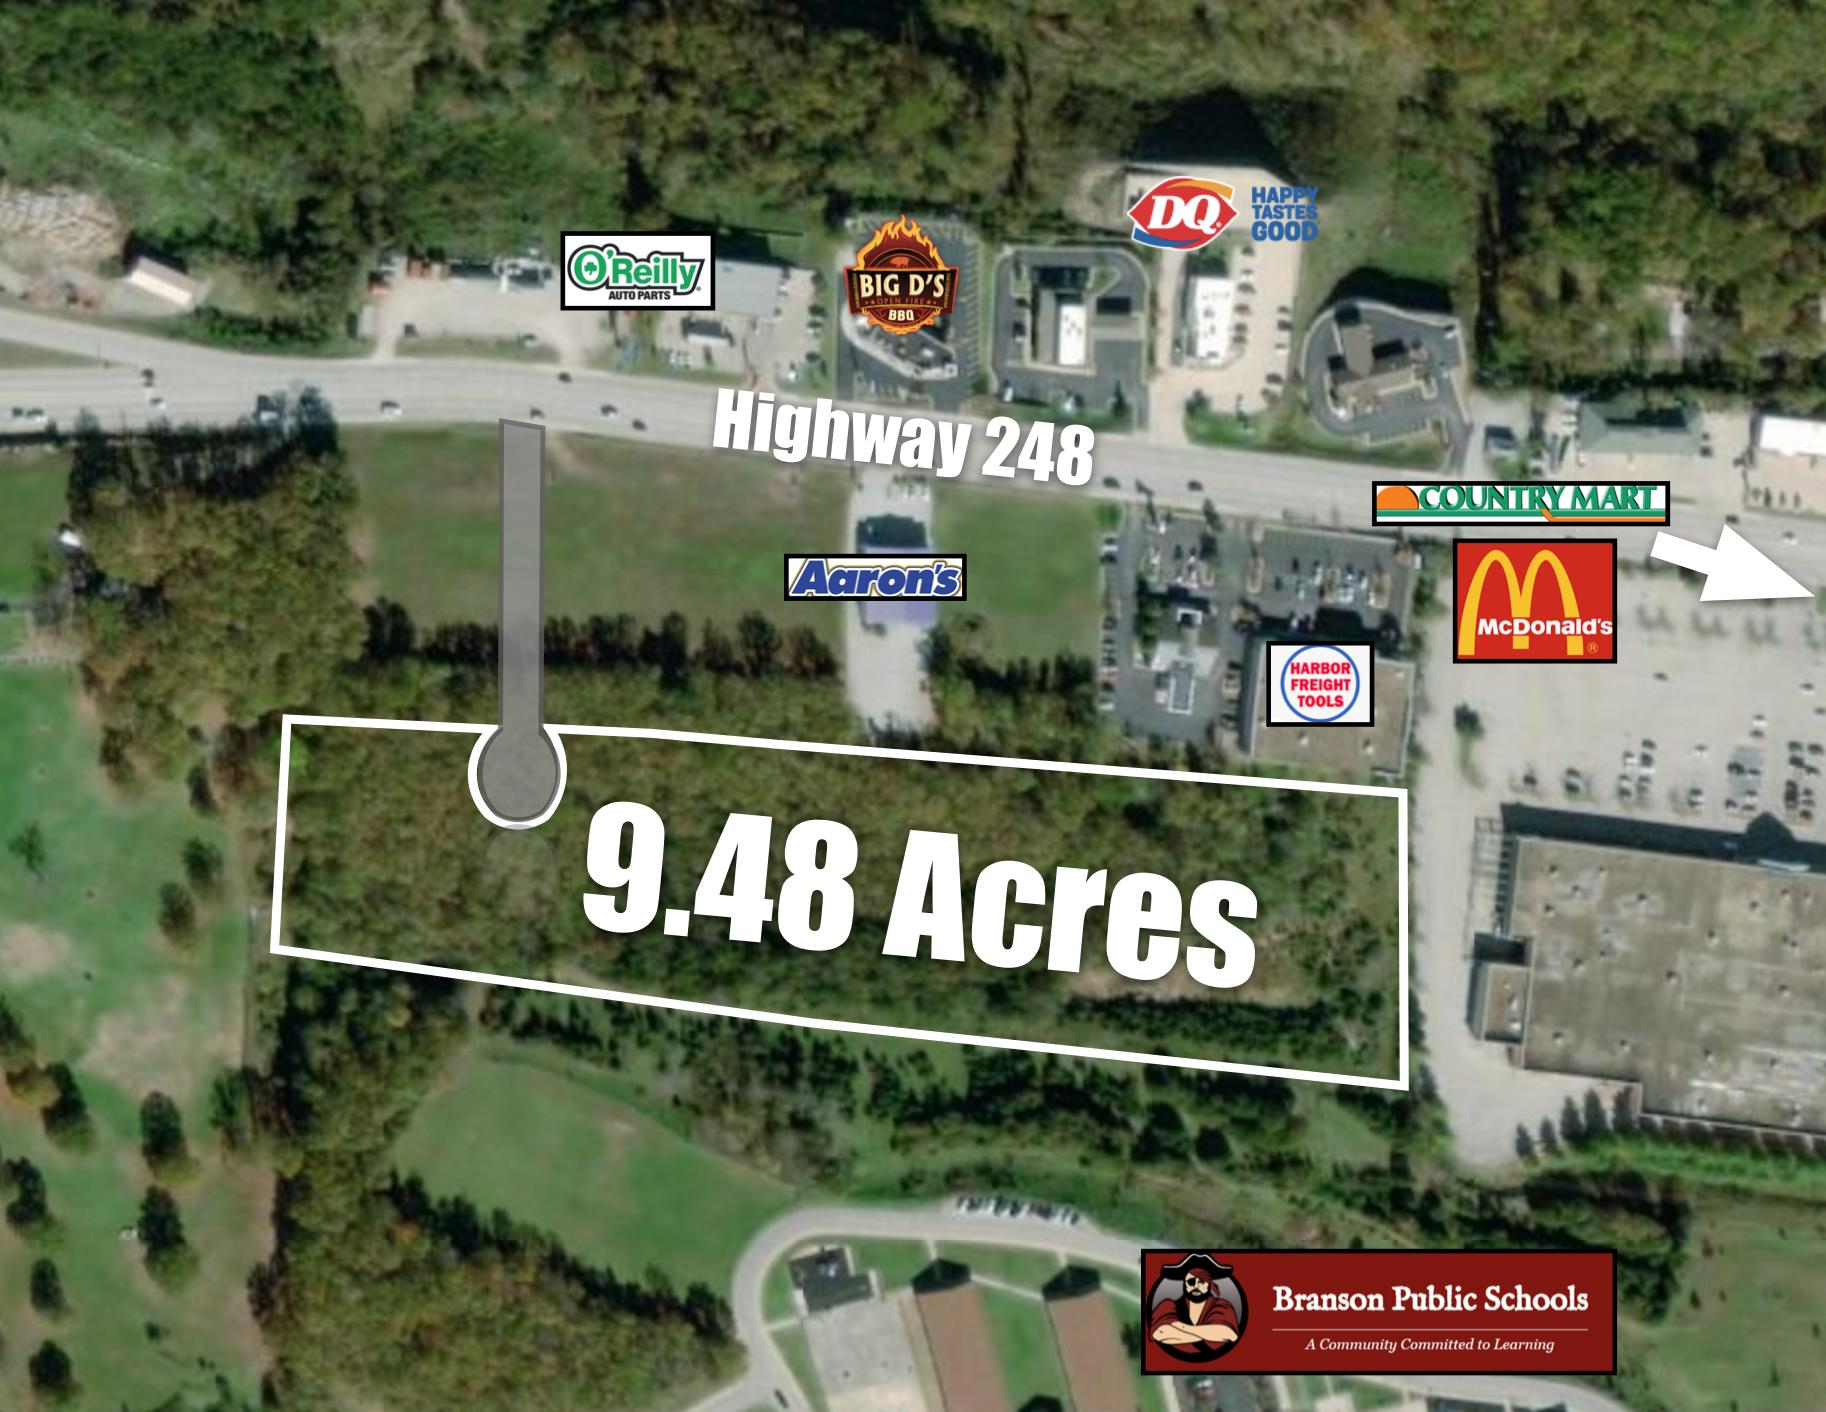 Lot 5 State Hwy Branson, MO 65616